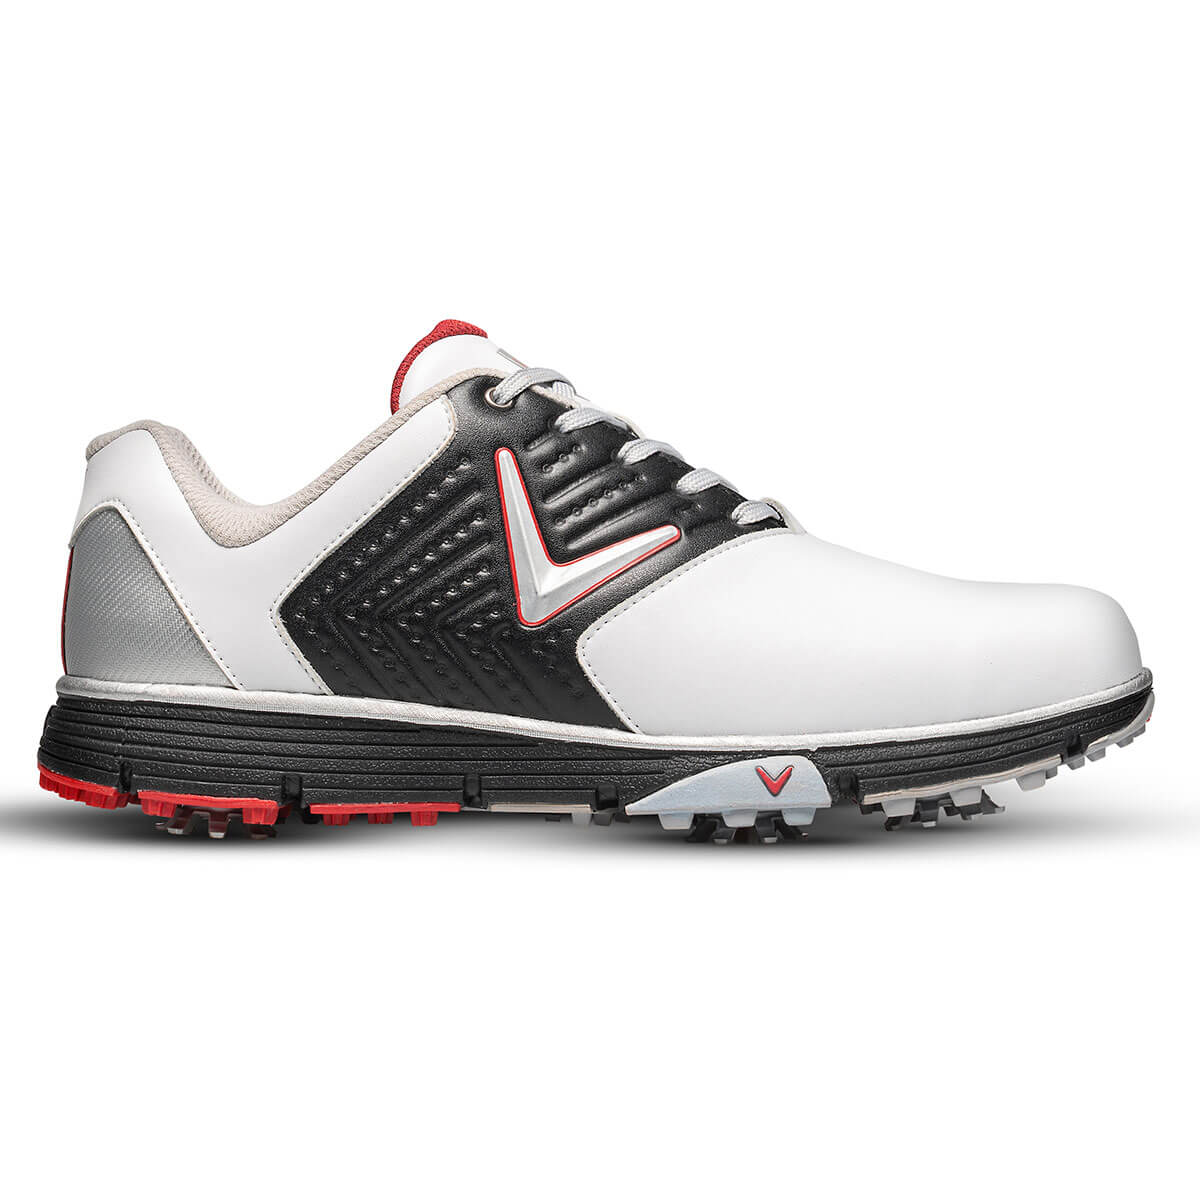 Callaway-Golf-Mens-2019-Chev-Mulligan-Waterproof-Leather-Golf-Shoes-29-OFF-RRP thumbnail 13